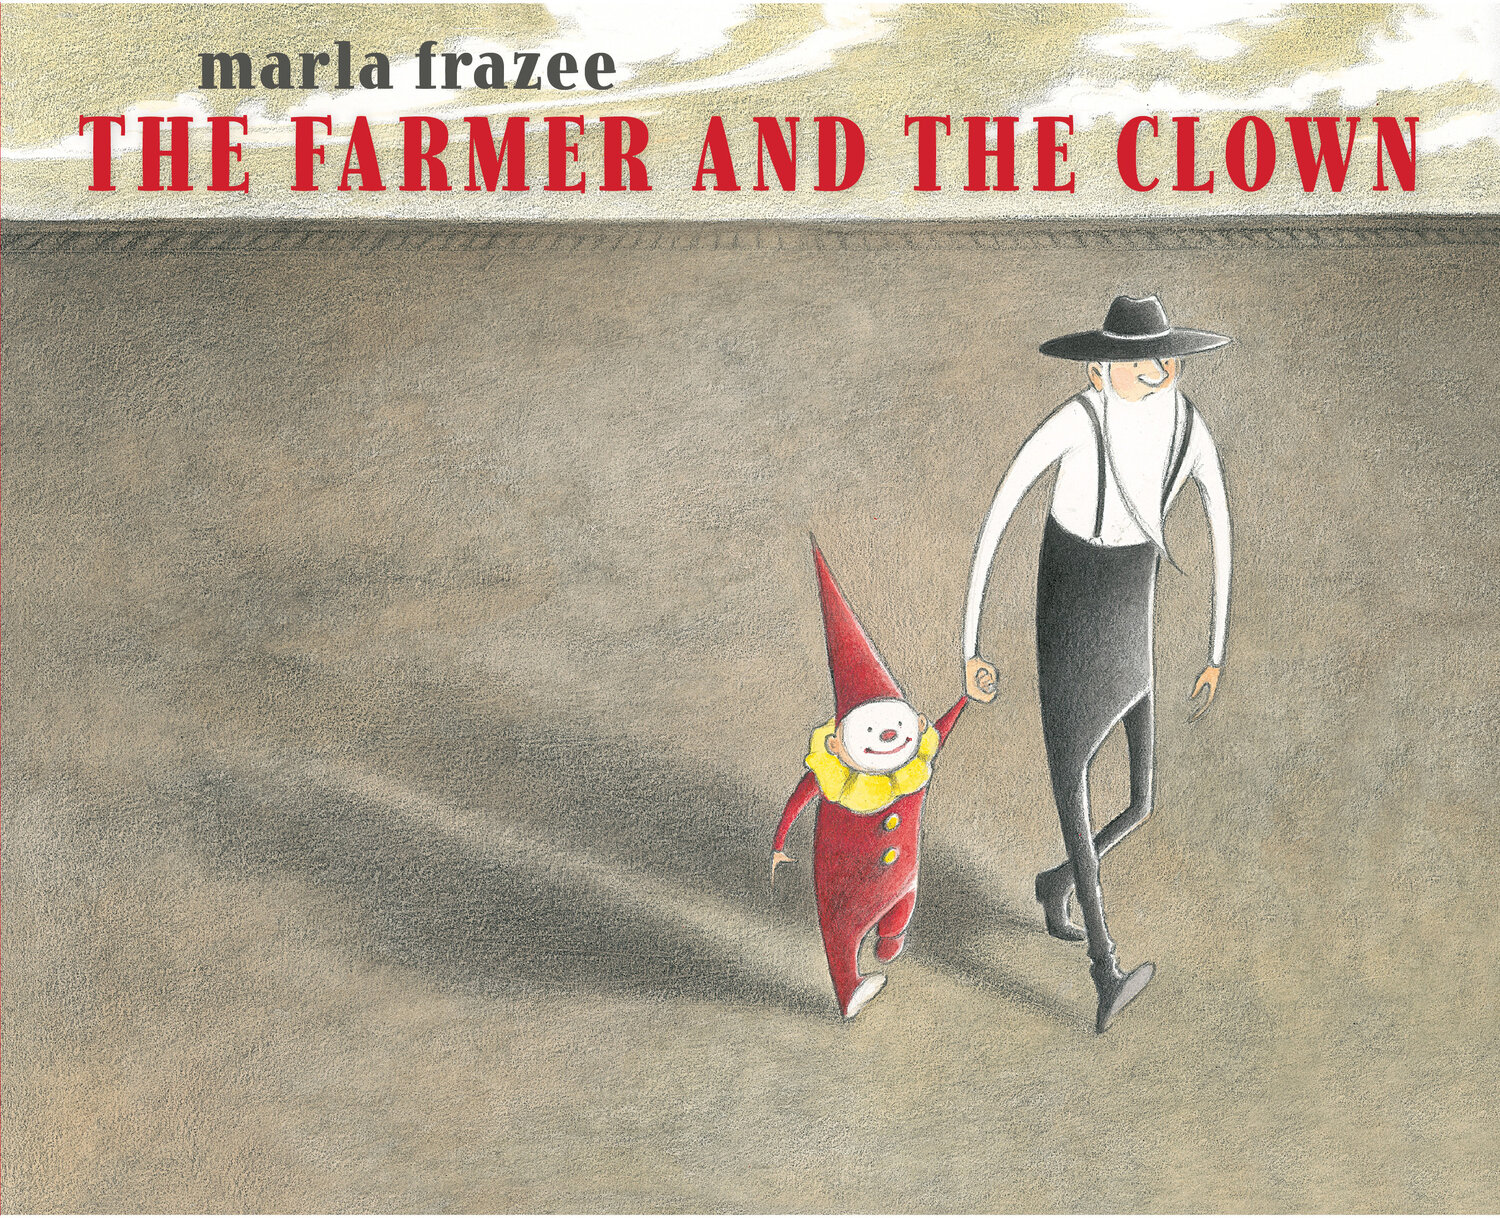 Excerpted from The Farmer and the Clown by Marla Frazee. Copyright 2014 by Marla Frazee. Excerpted by permission of Beach Lane Books, an imprint of Simon & Schuster Children's Publishing Division.